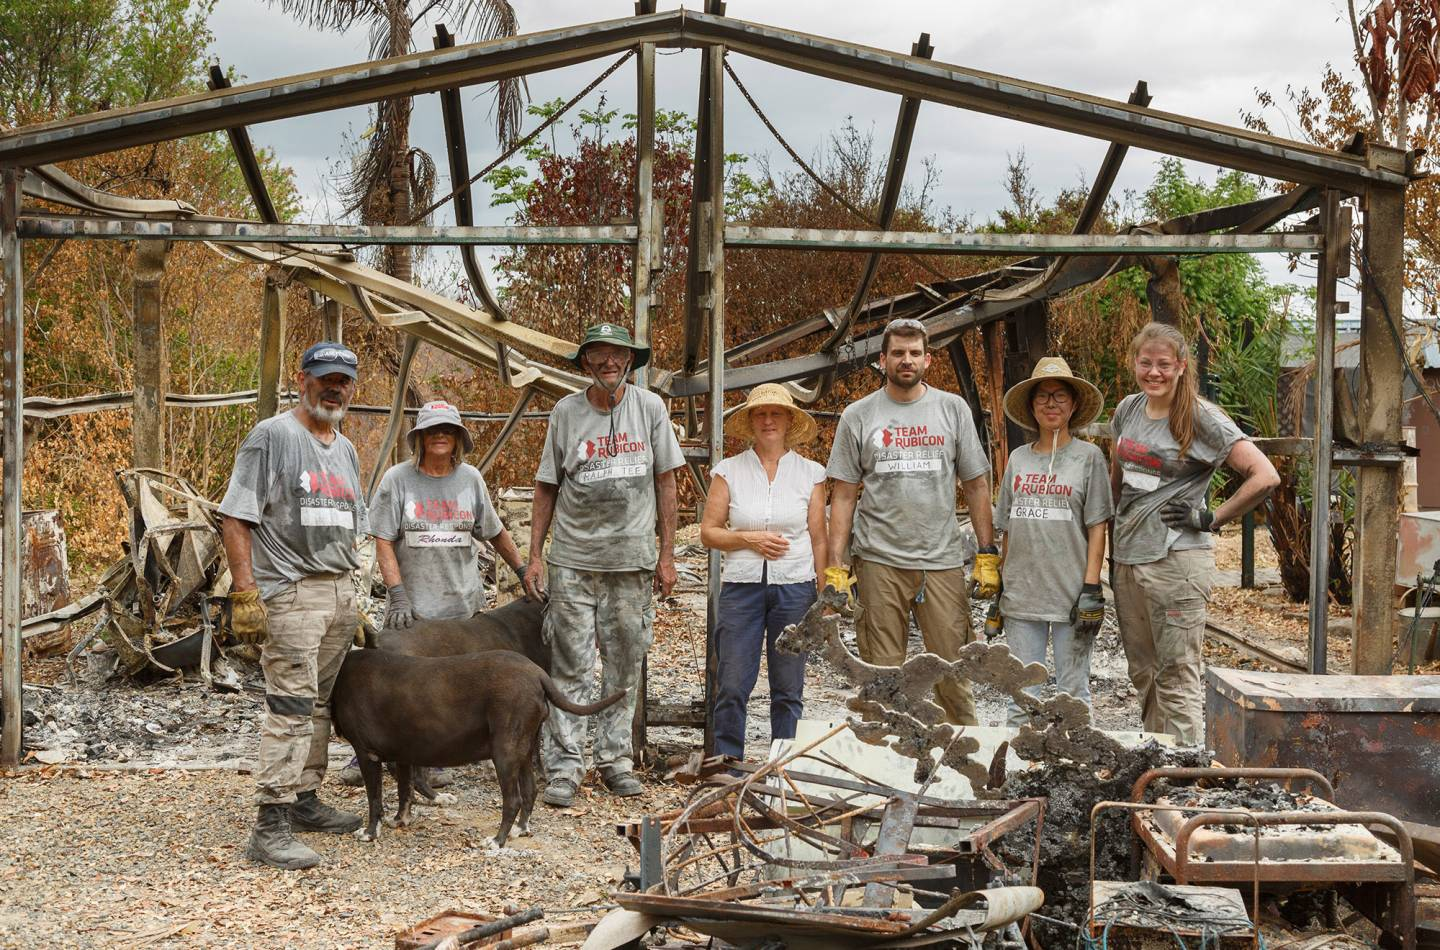 Group photo of Team Rubicon volunteers